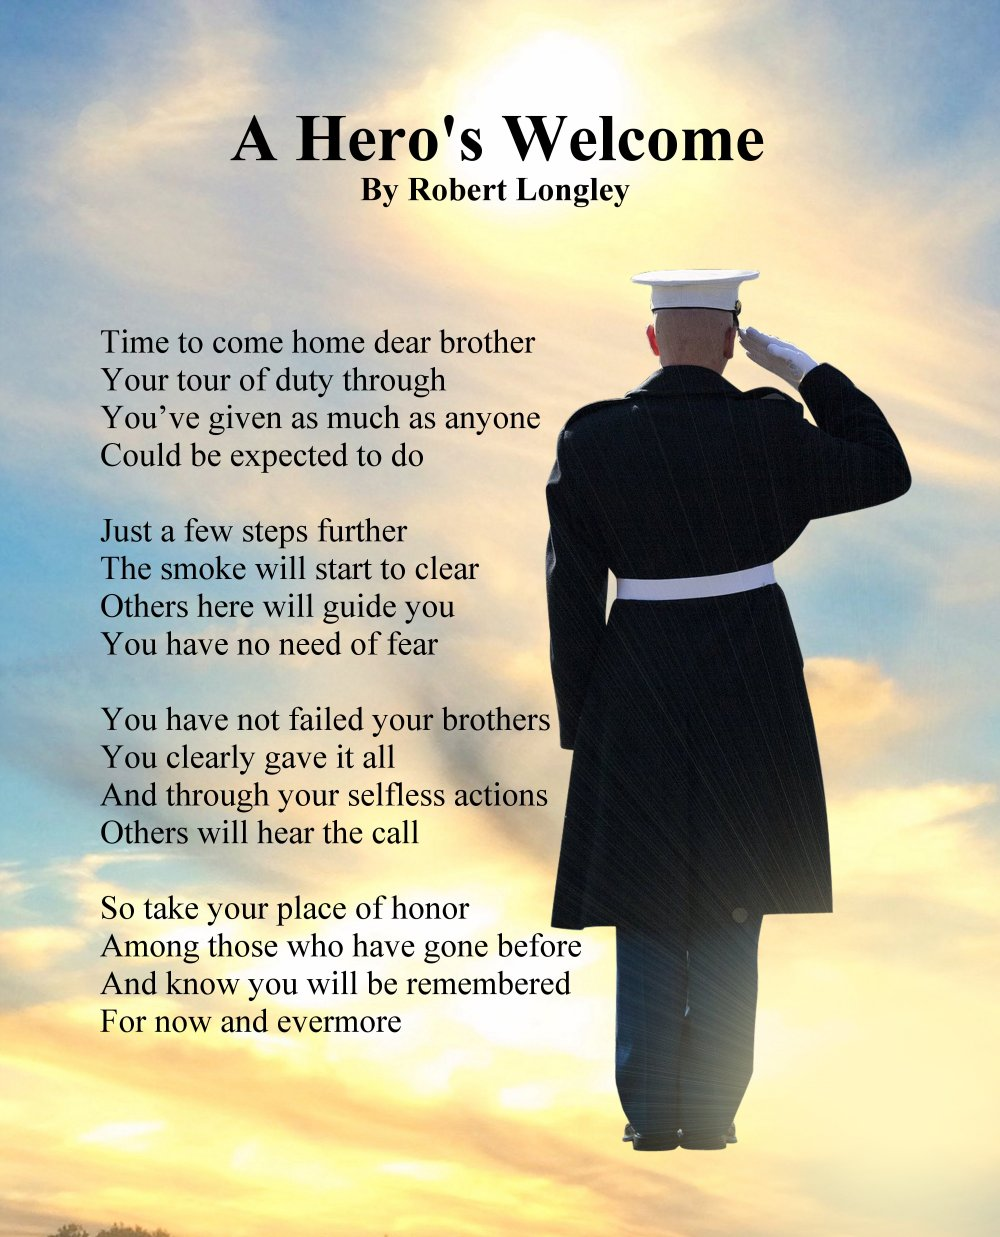 A Heros Welcome Veterans Day Poem